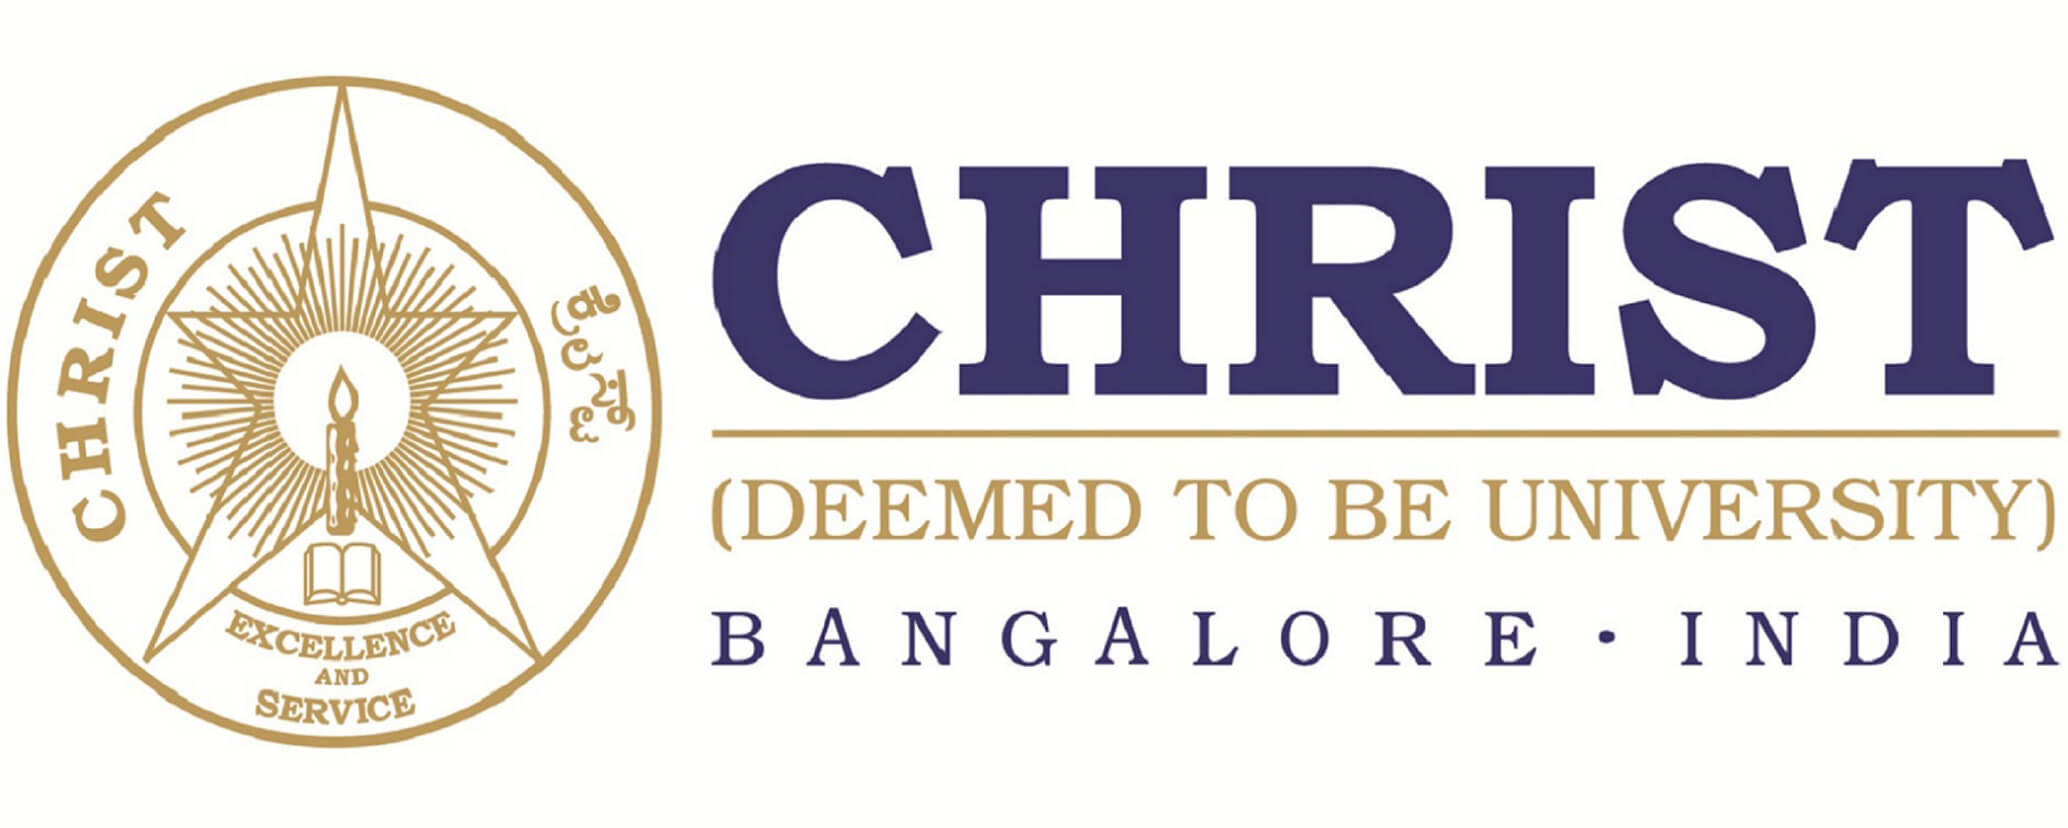 christ university bangalore logo